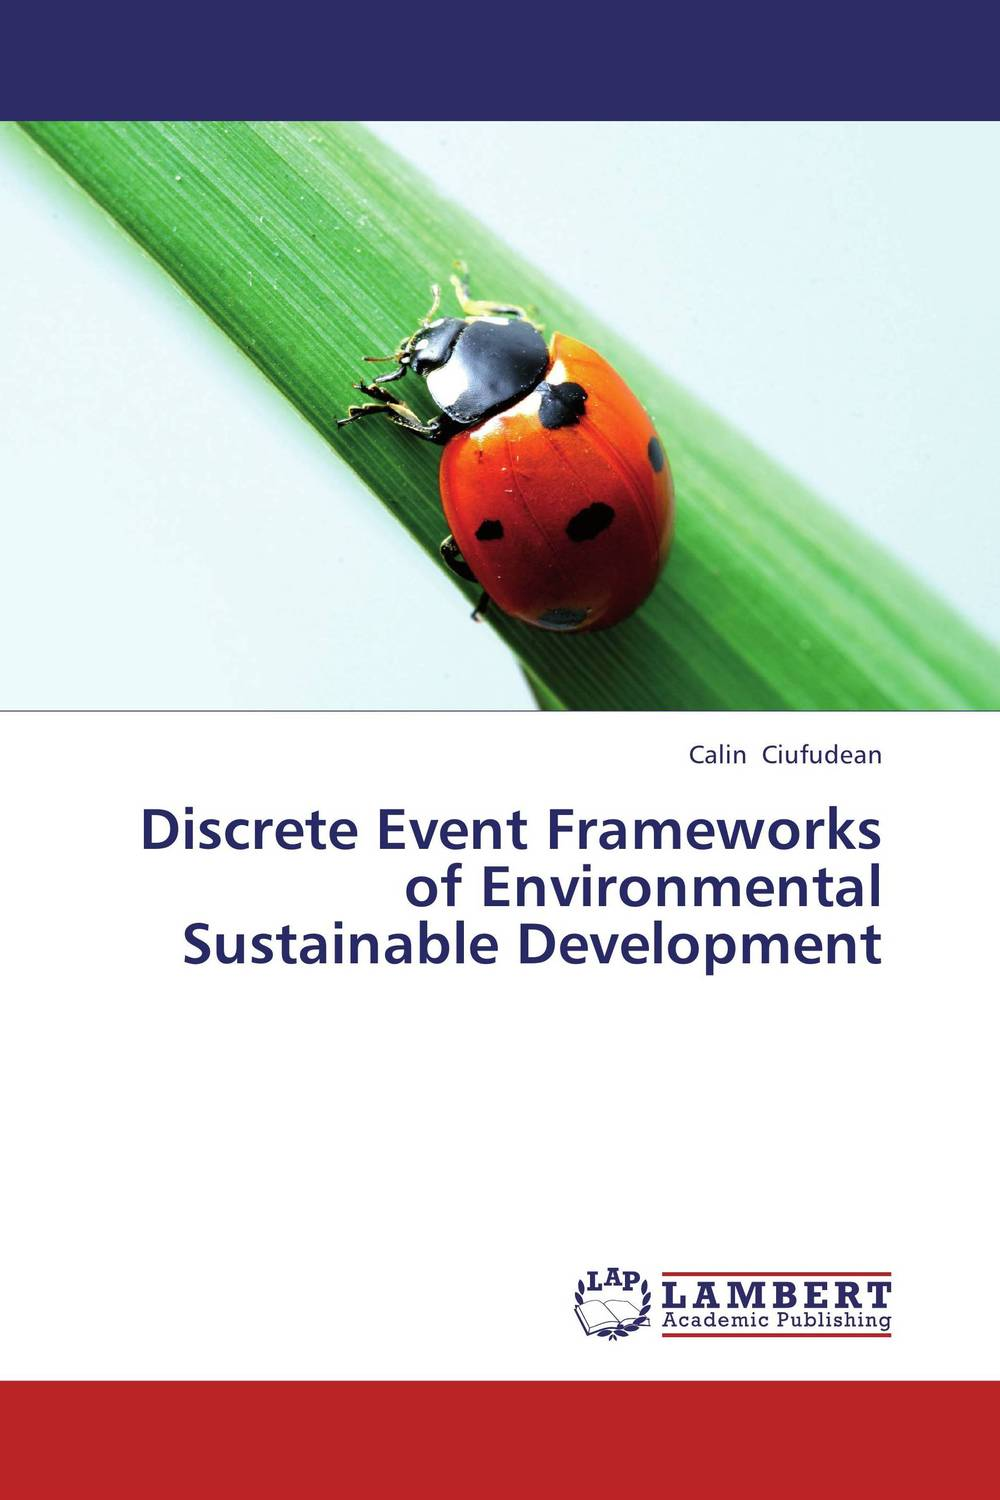 цена на Discrete Event Frameworks of Environmental Sustainable Development